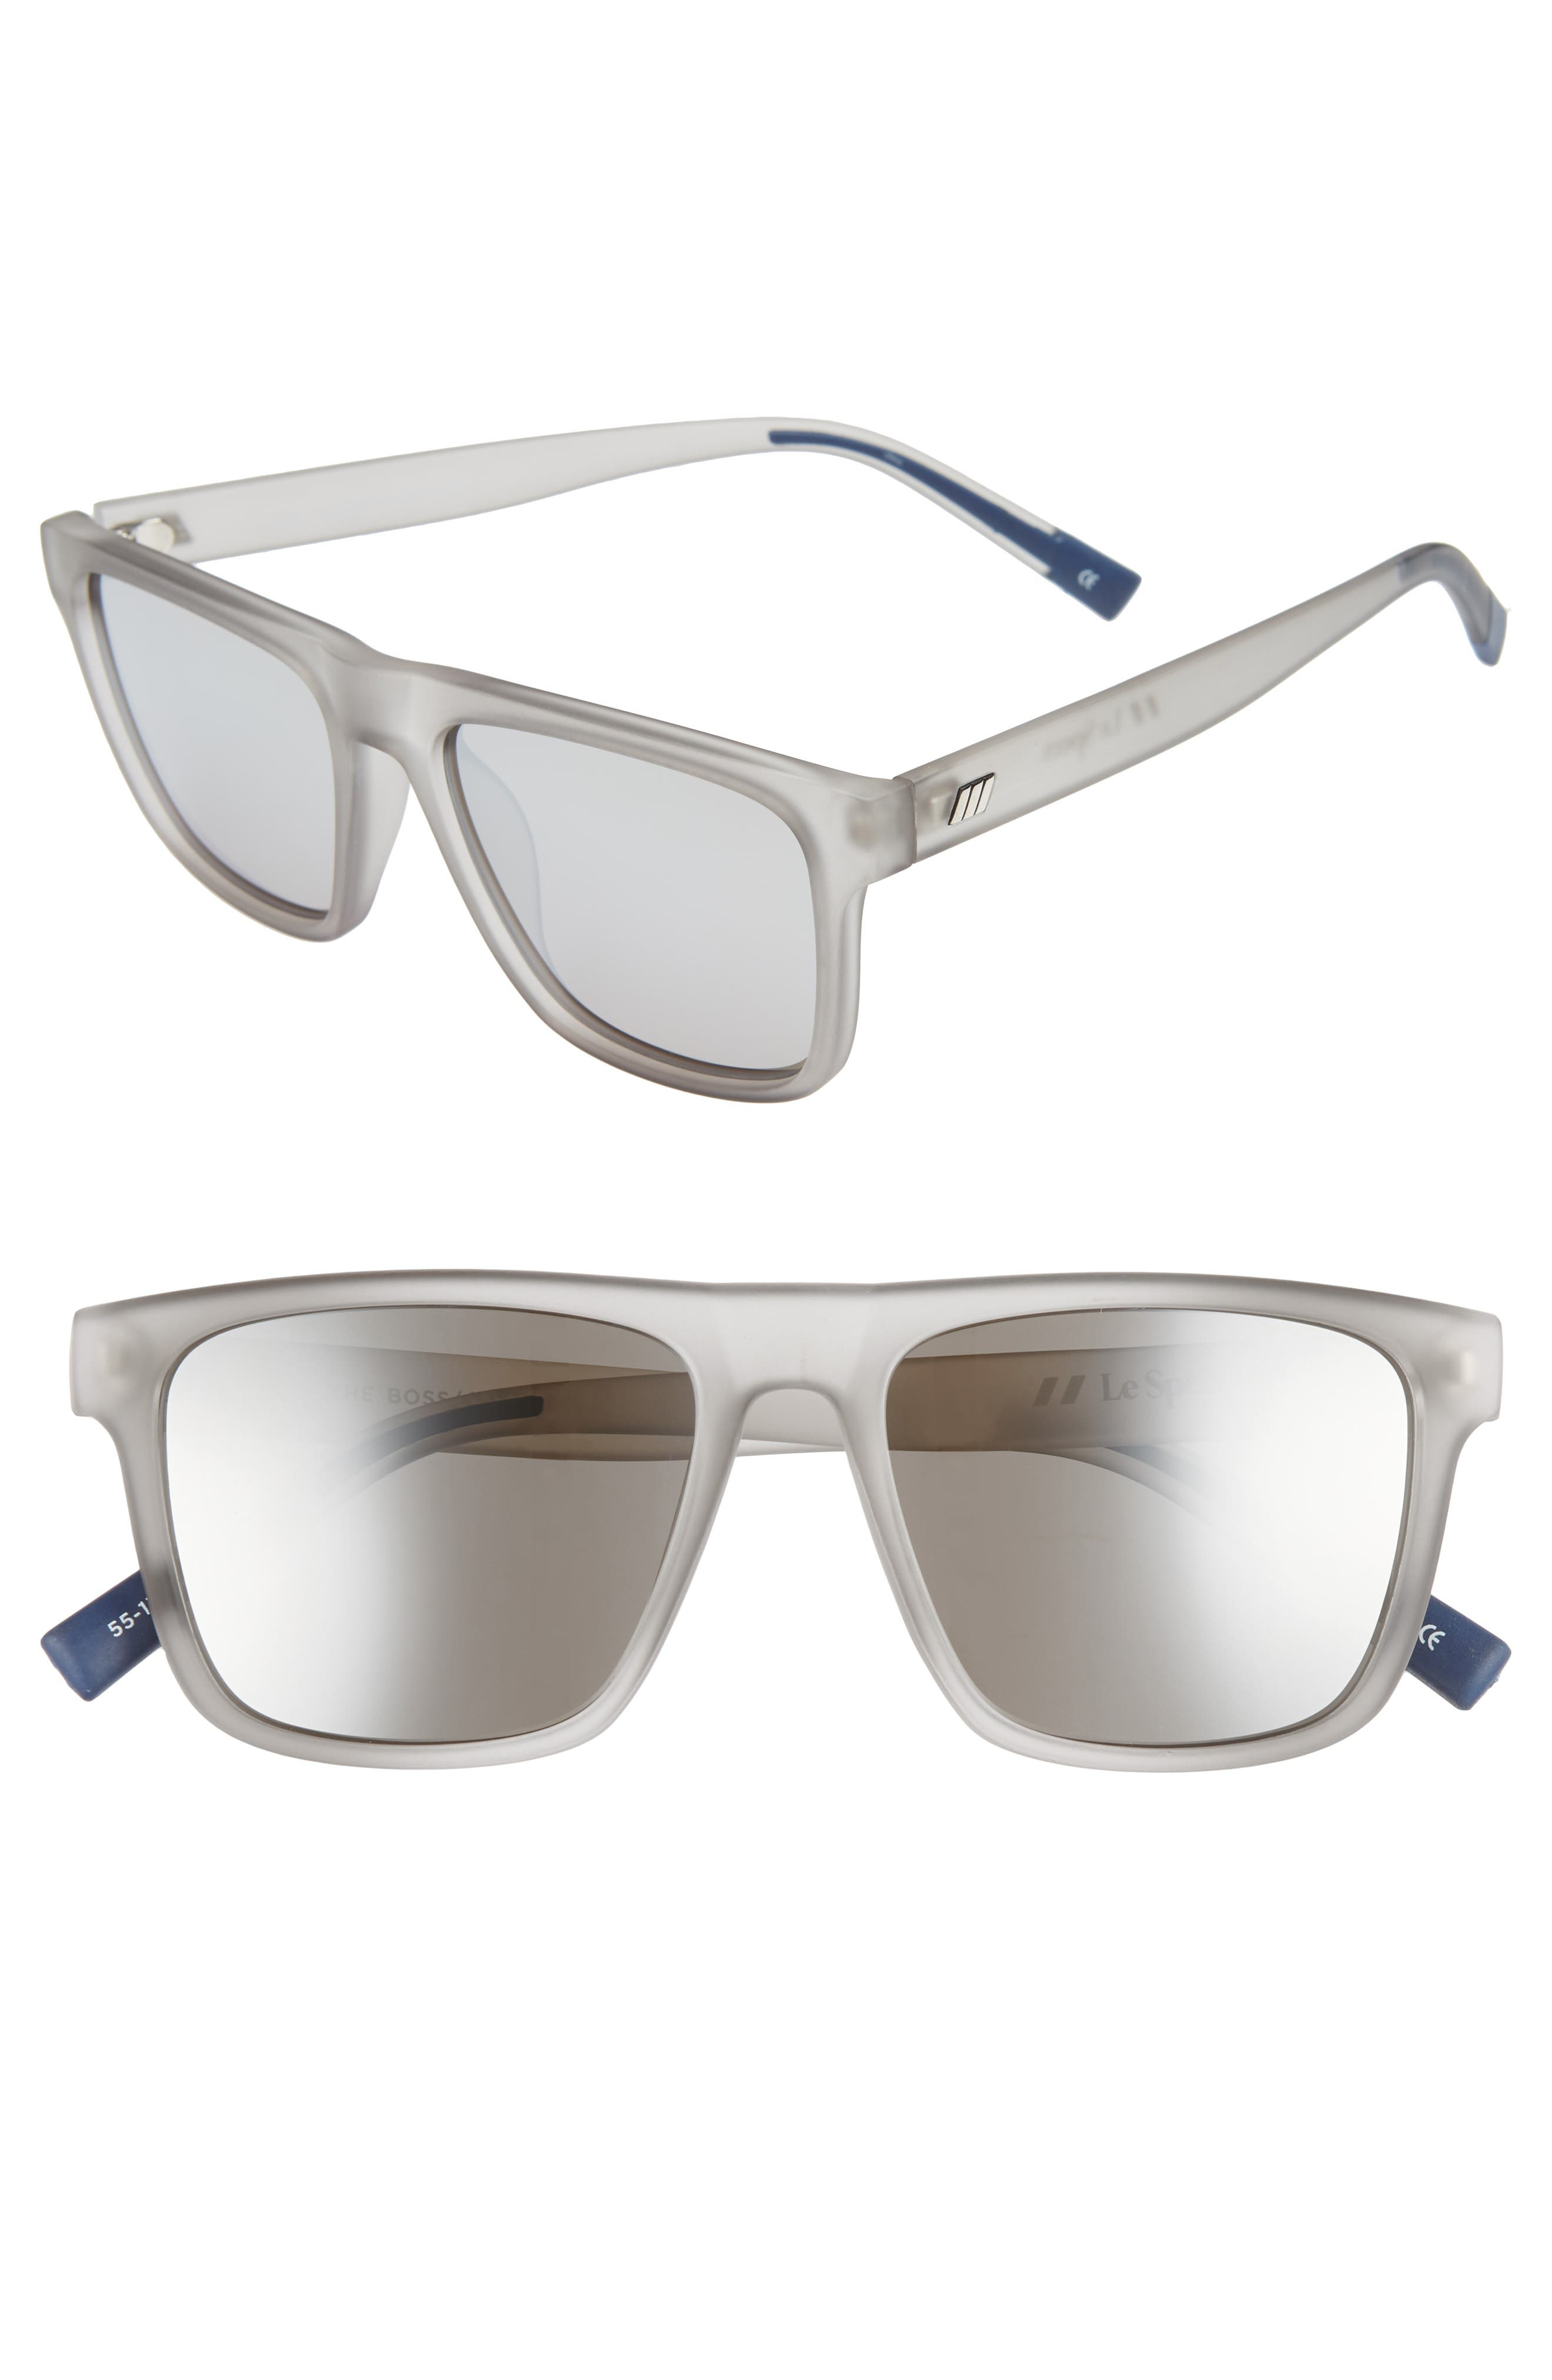 Men'S The Boss Mirrored Flat Top Square Sunglasses, 56Mm in Matte Shadow